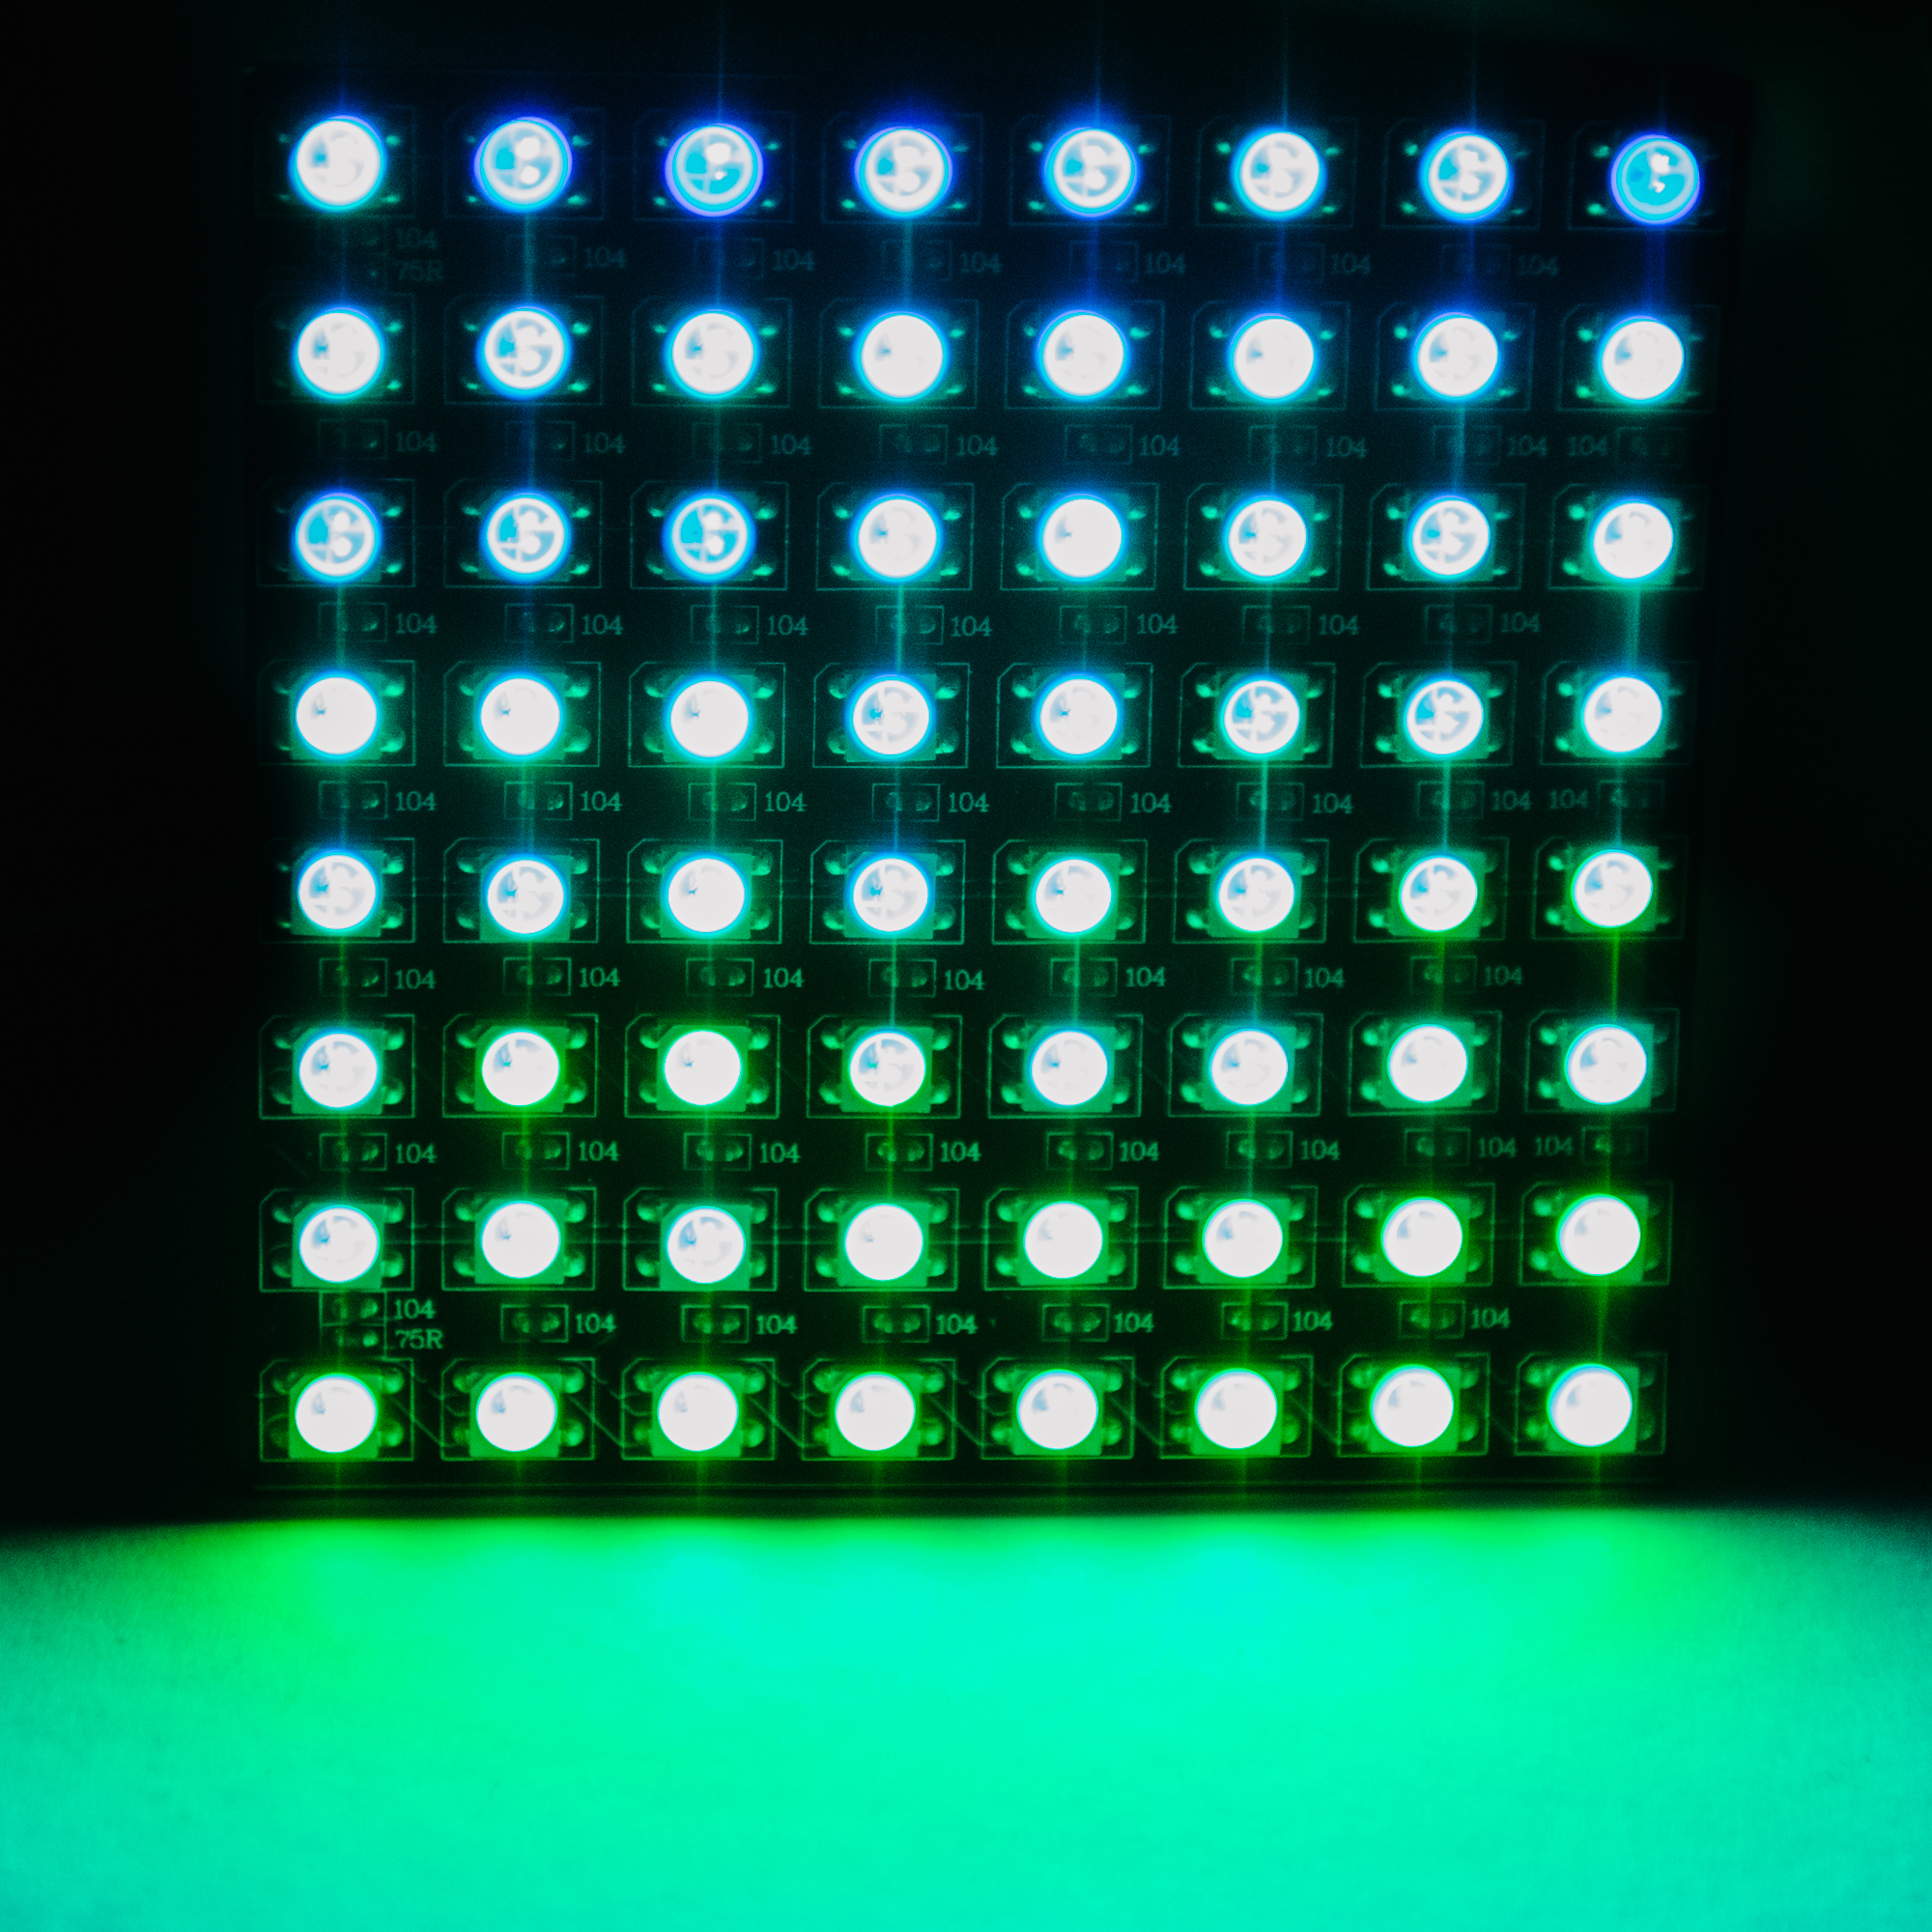 LED Matrix in the dark